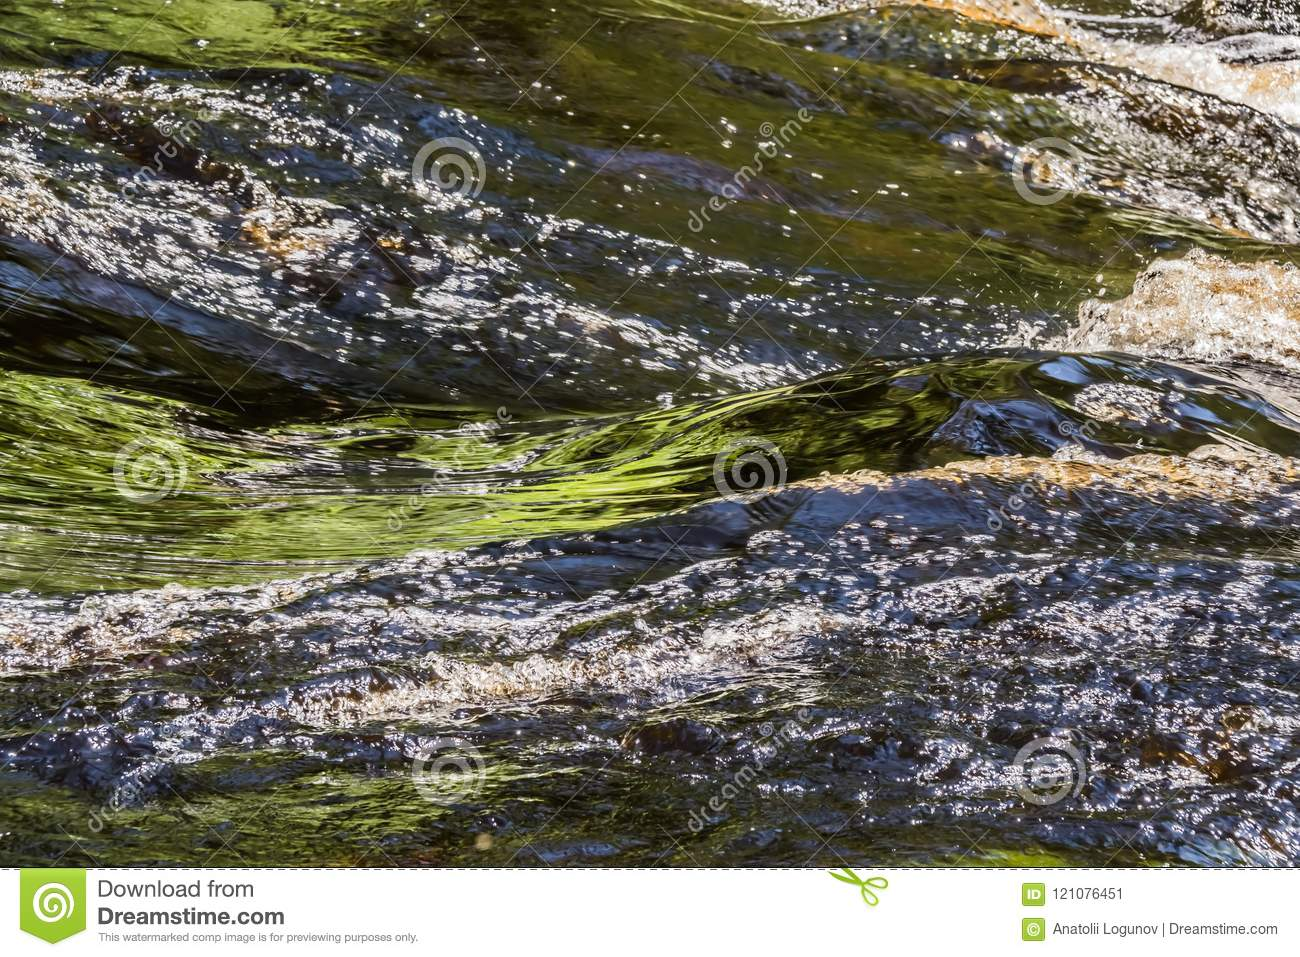 Color waves and whirlpools of the river